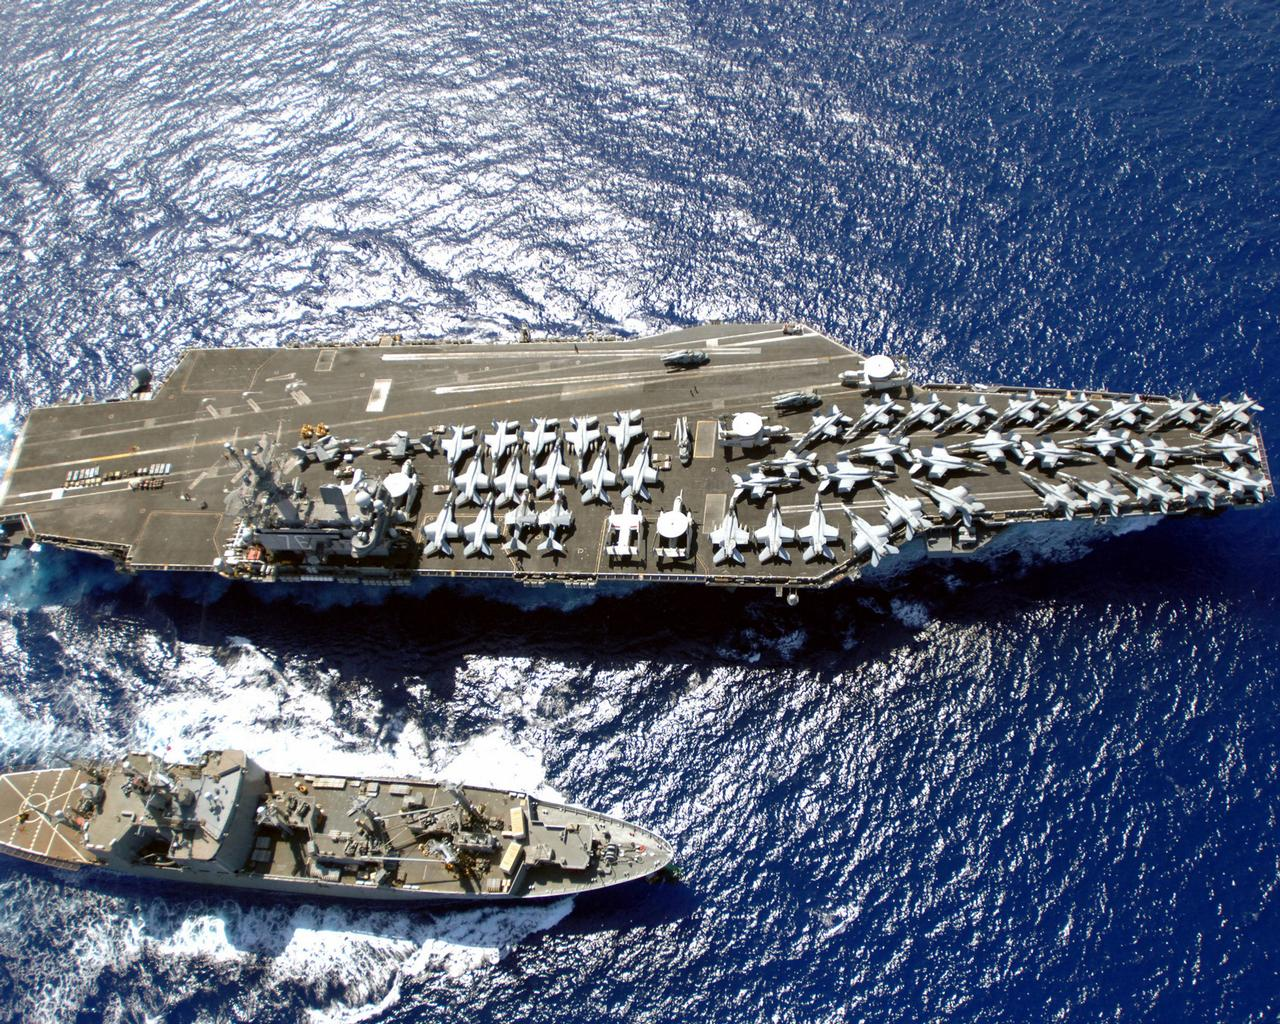 Though huge for a ship, Nimitz-class aircraft carrier USS Ronald Reagan (CVN 76) makes for an extremely tight air base (Image Credit: US Navy)